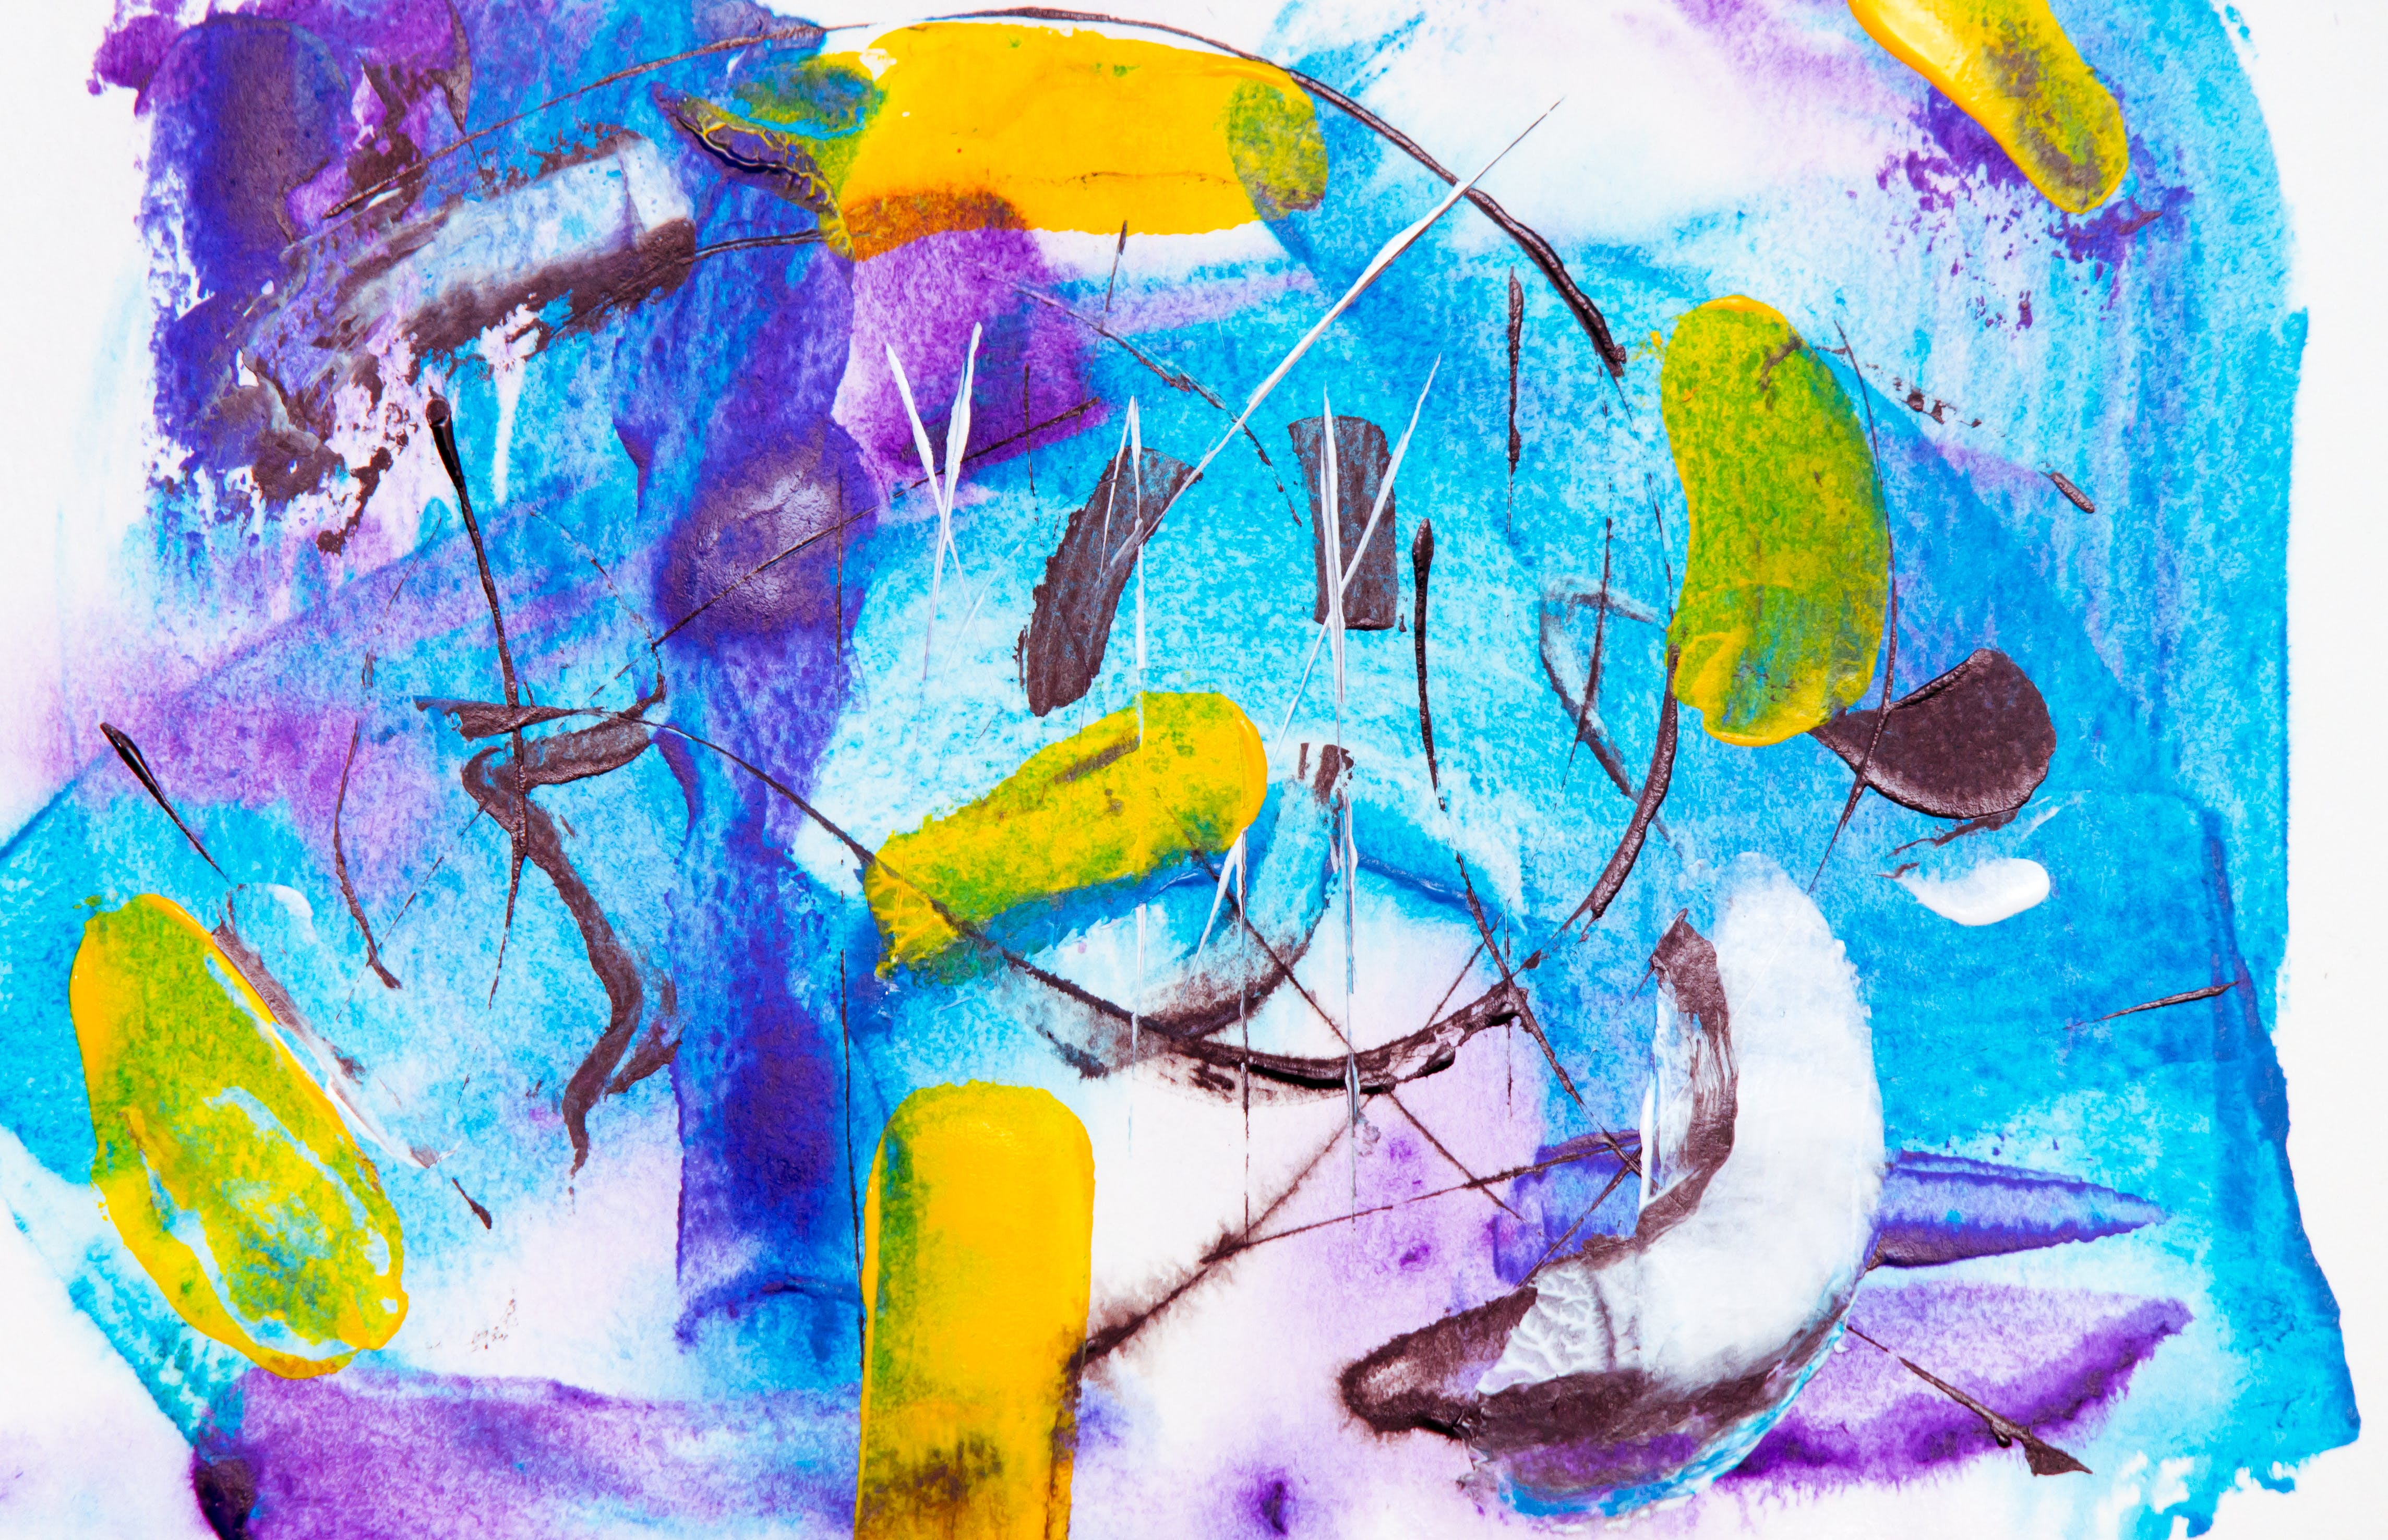 Multi-colored Abstract Artwork